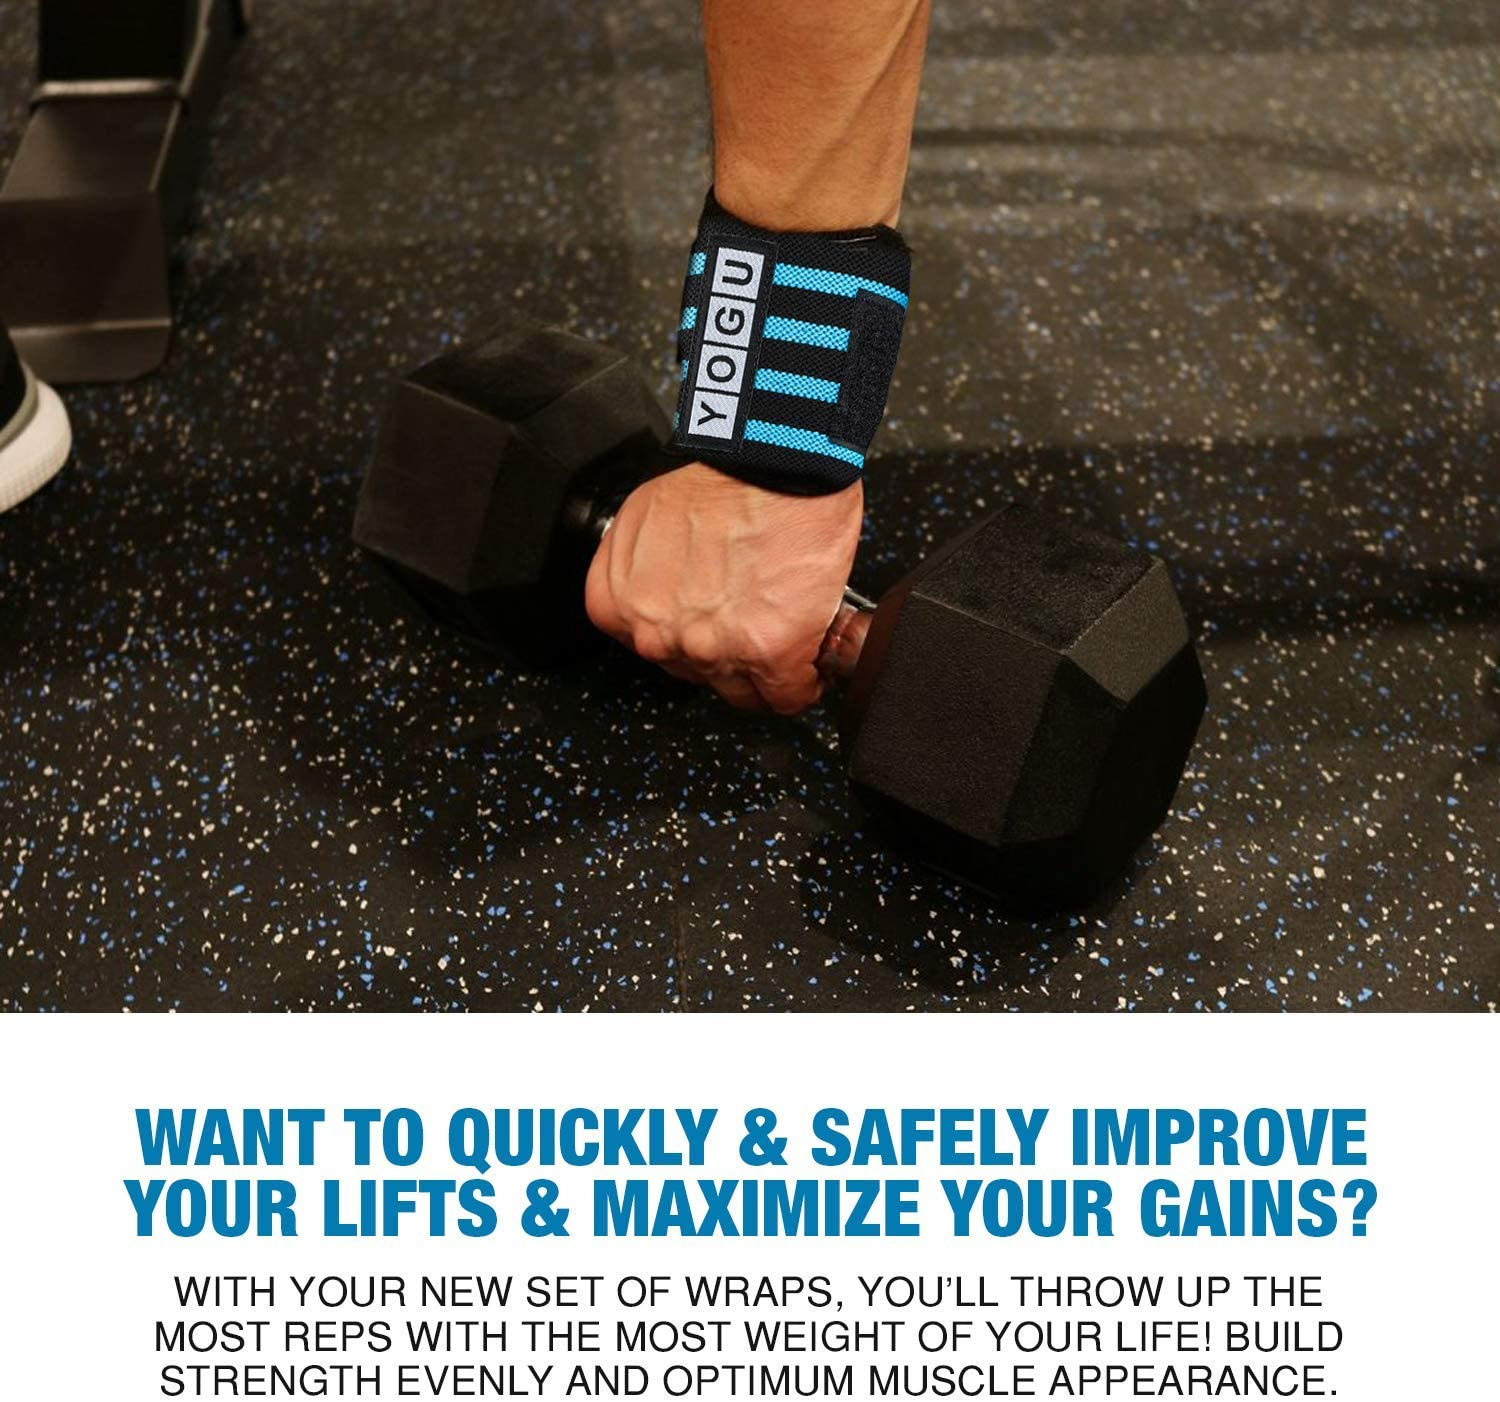 """YOGU Wrist Wraps with Thumb Loops Wrist Support Braces for Heavier Weight Lifting Xfit Powerlifting Crossfit Strength Training Gym Workouts Bodybuilding Wrist Straps 18"""" Pair with Free Carry Bag : Sports & Outdoors"""